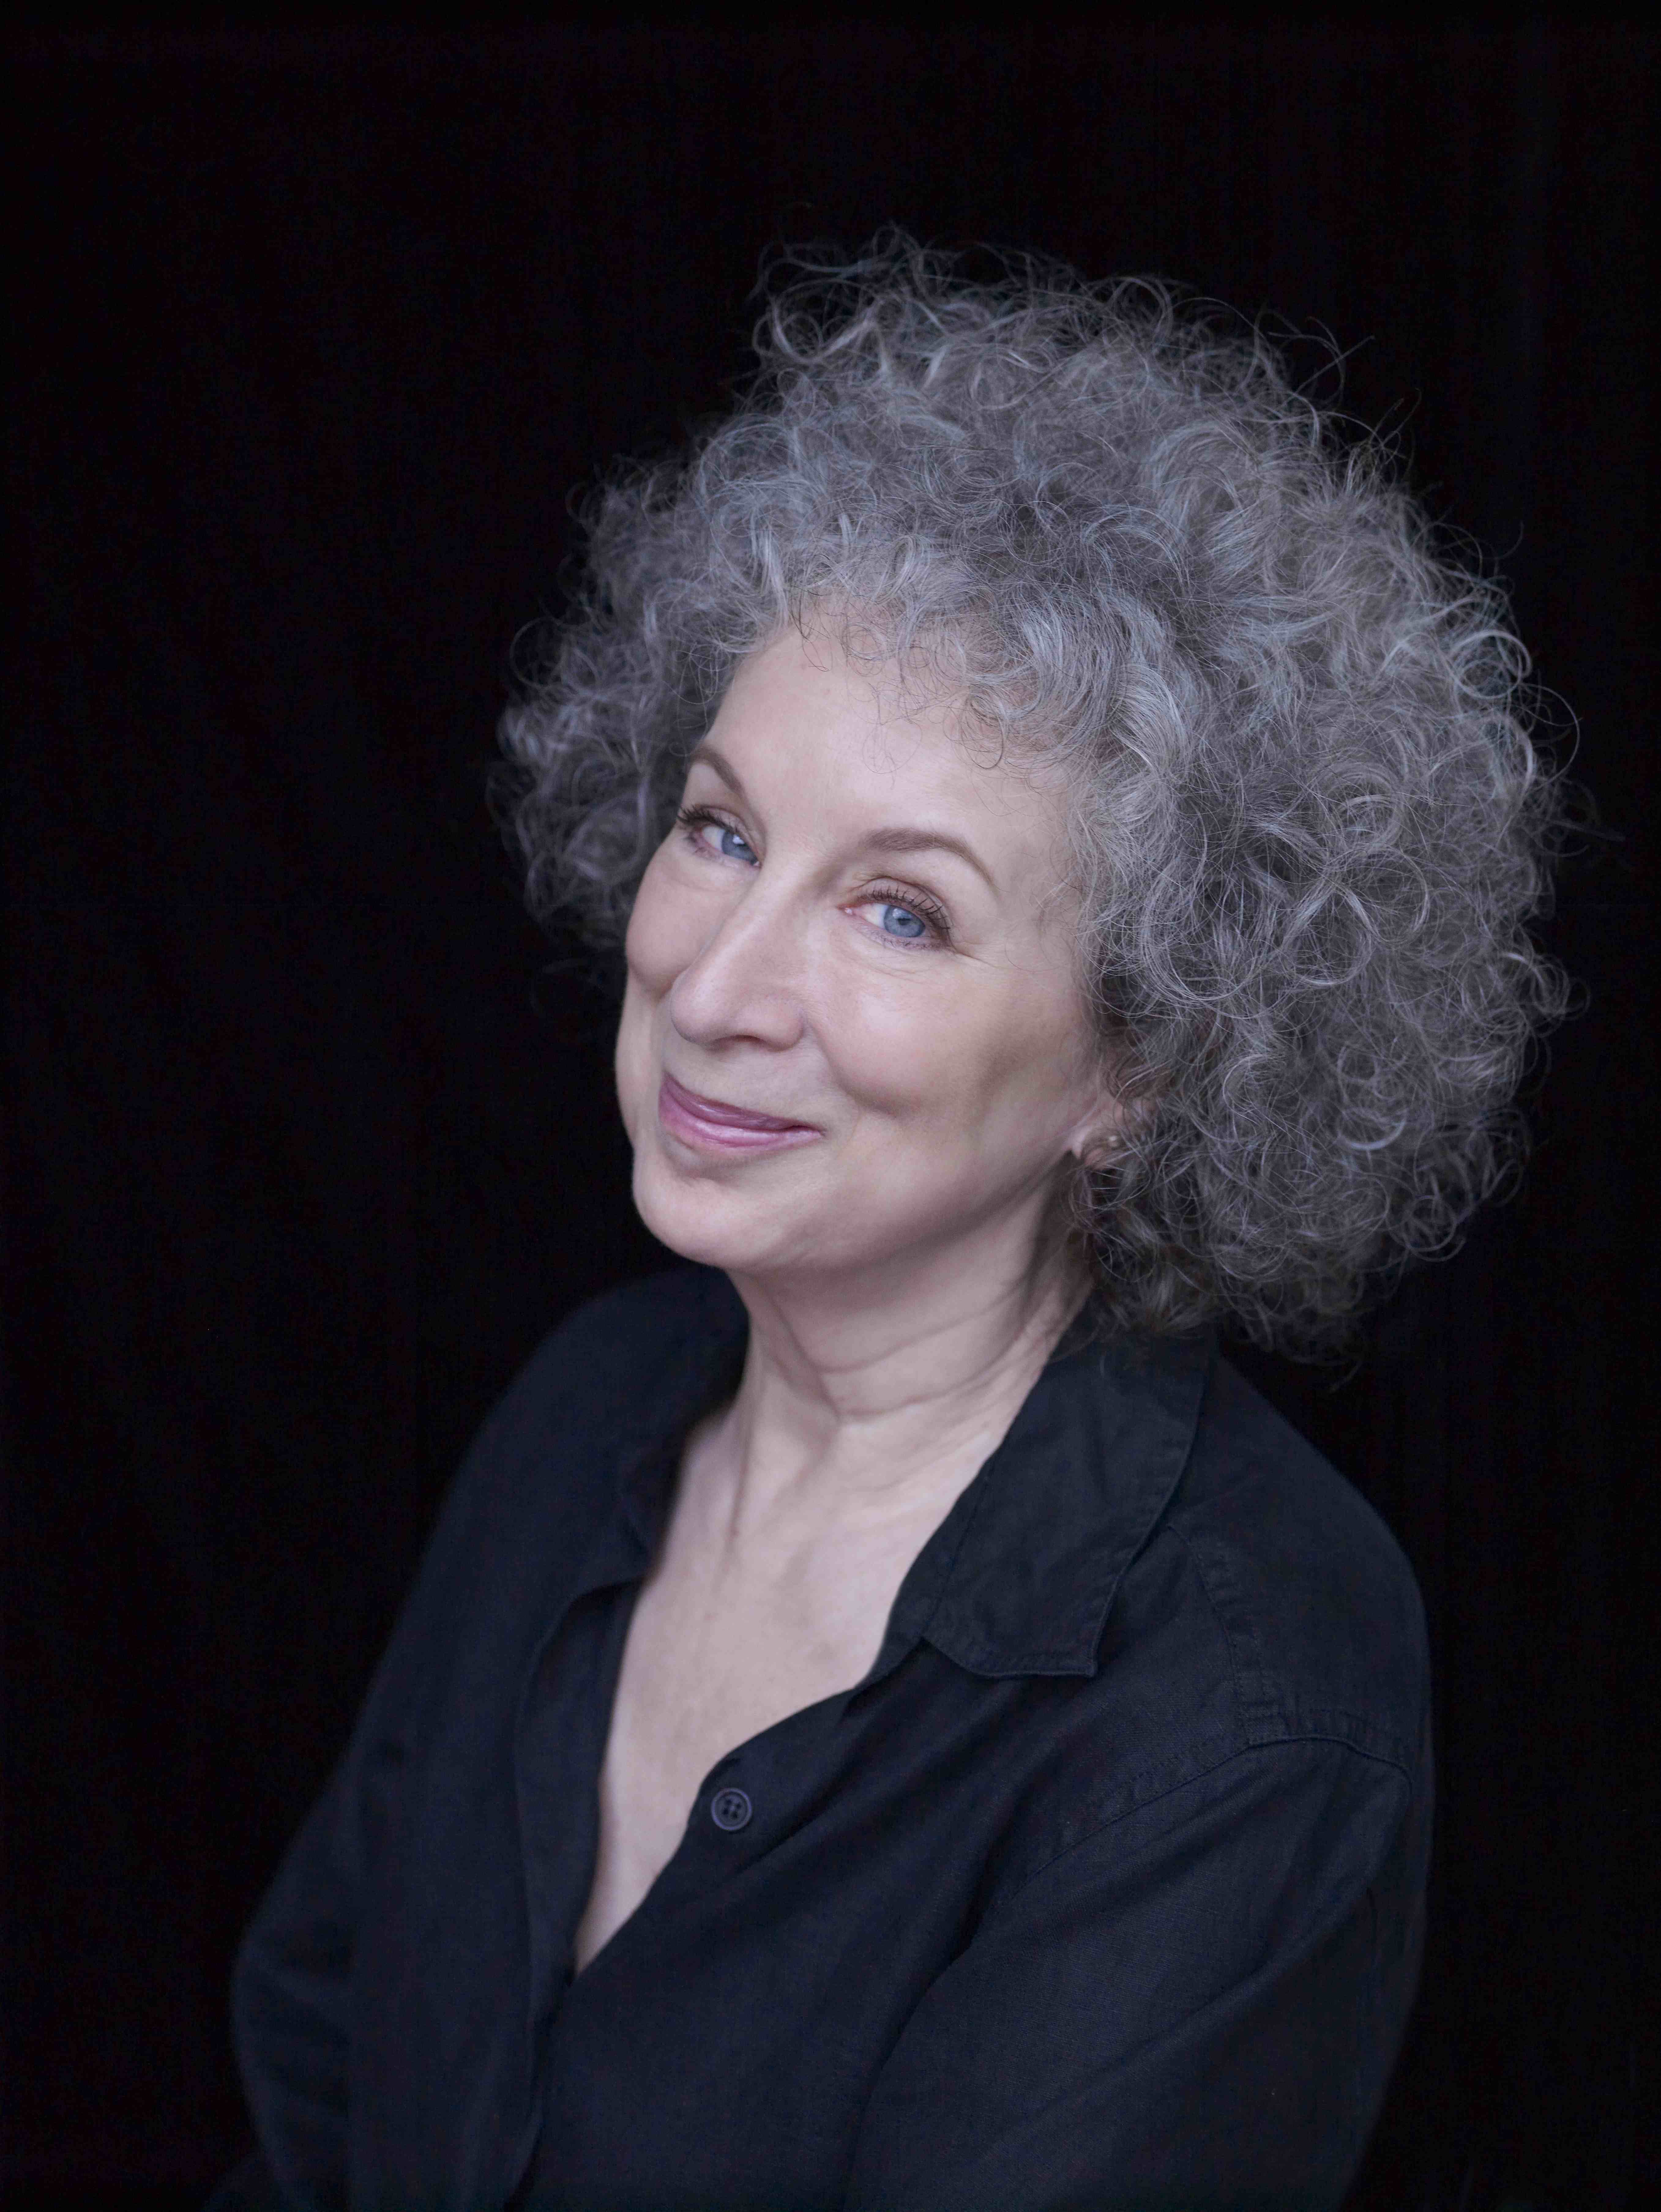 The Handmaid's Tale Author Margaret Atwood Announced as Keynote Speaker at FCCF's FWG Unite & Rise Luncheon, Friday, April 3, 2020